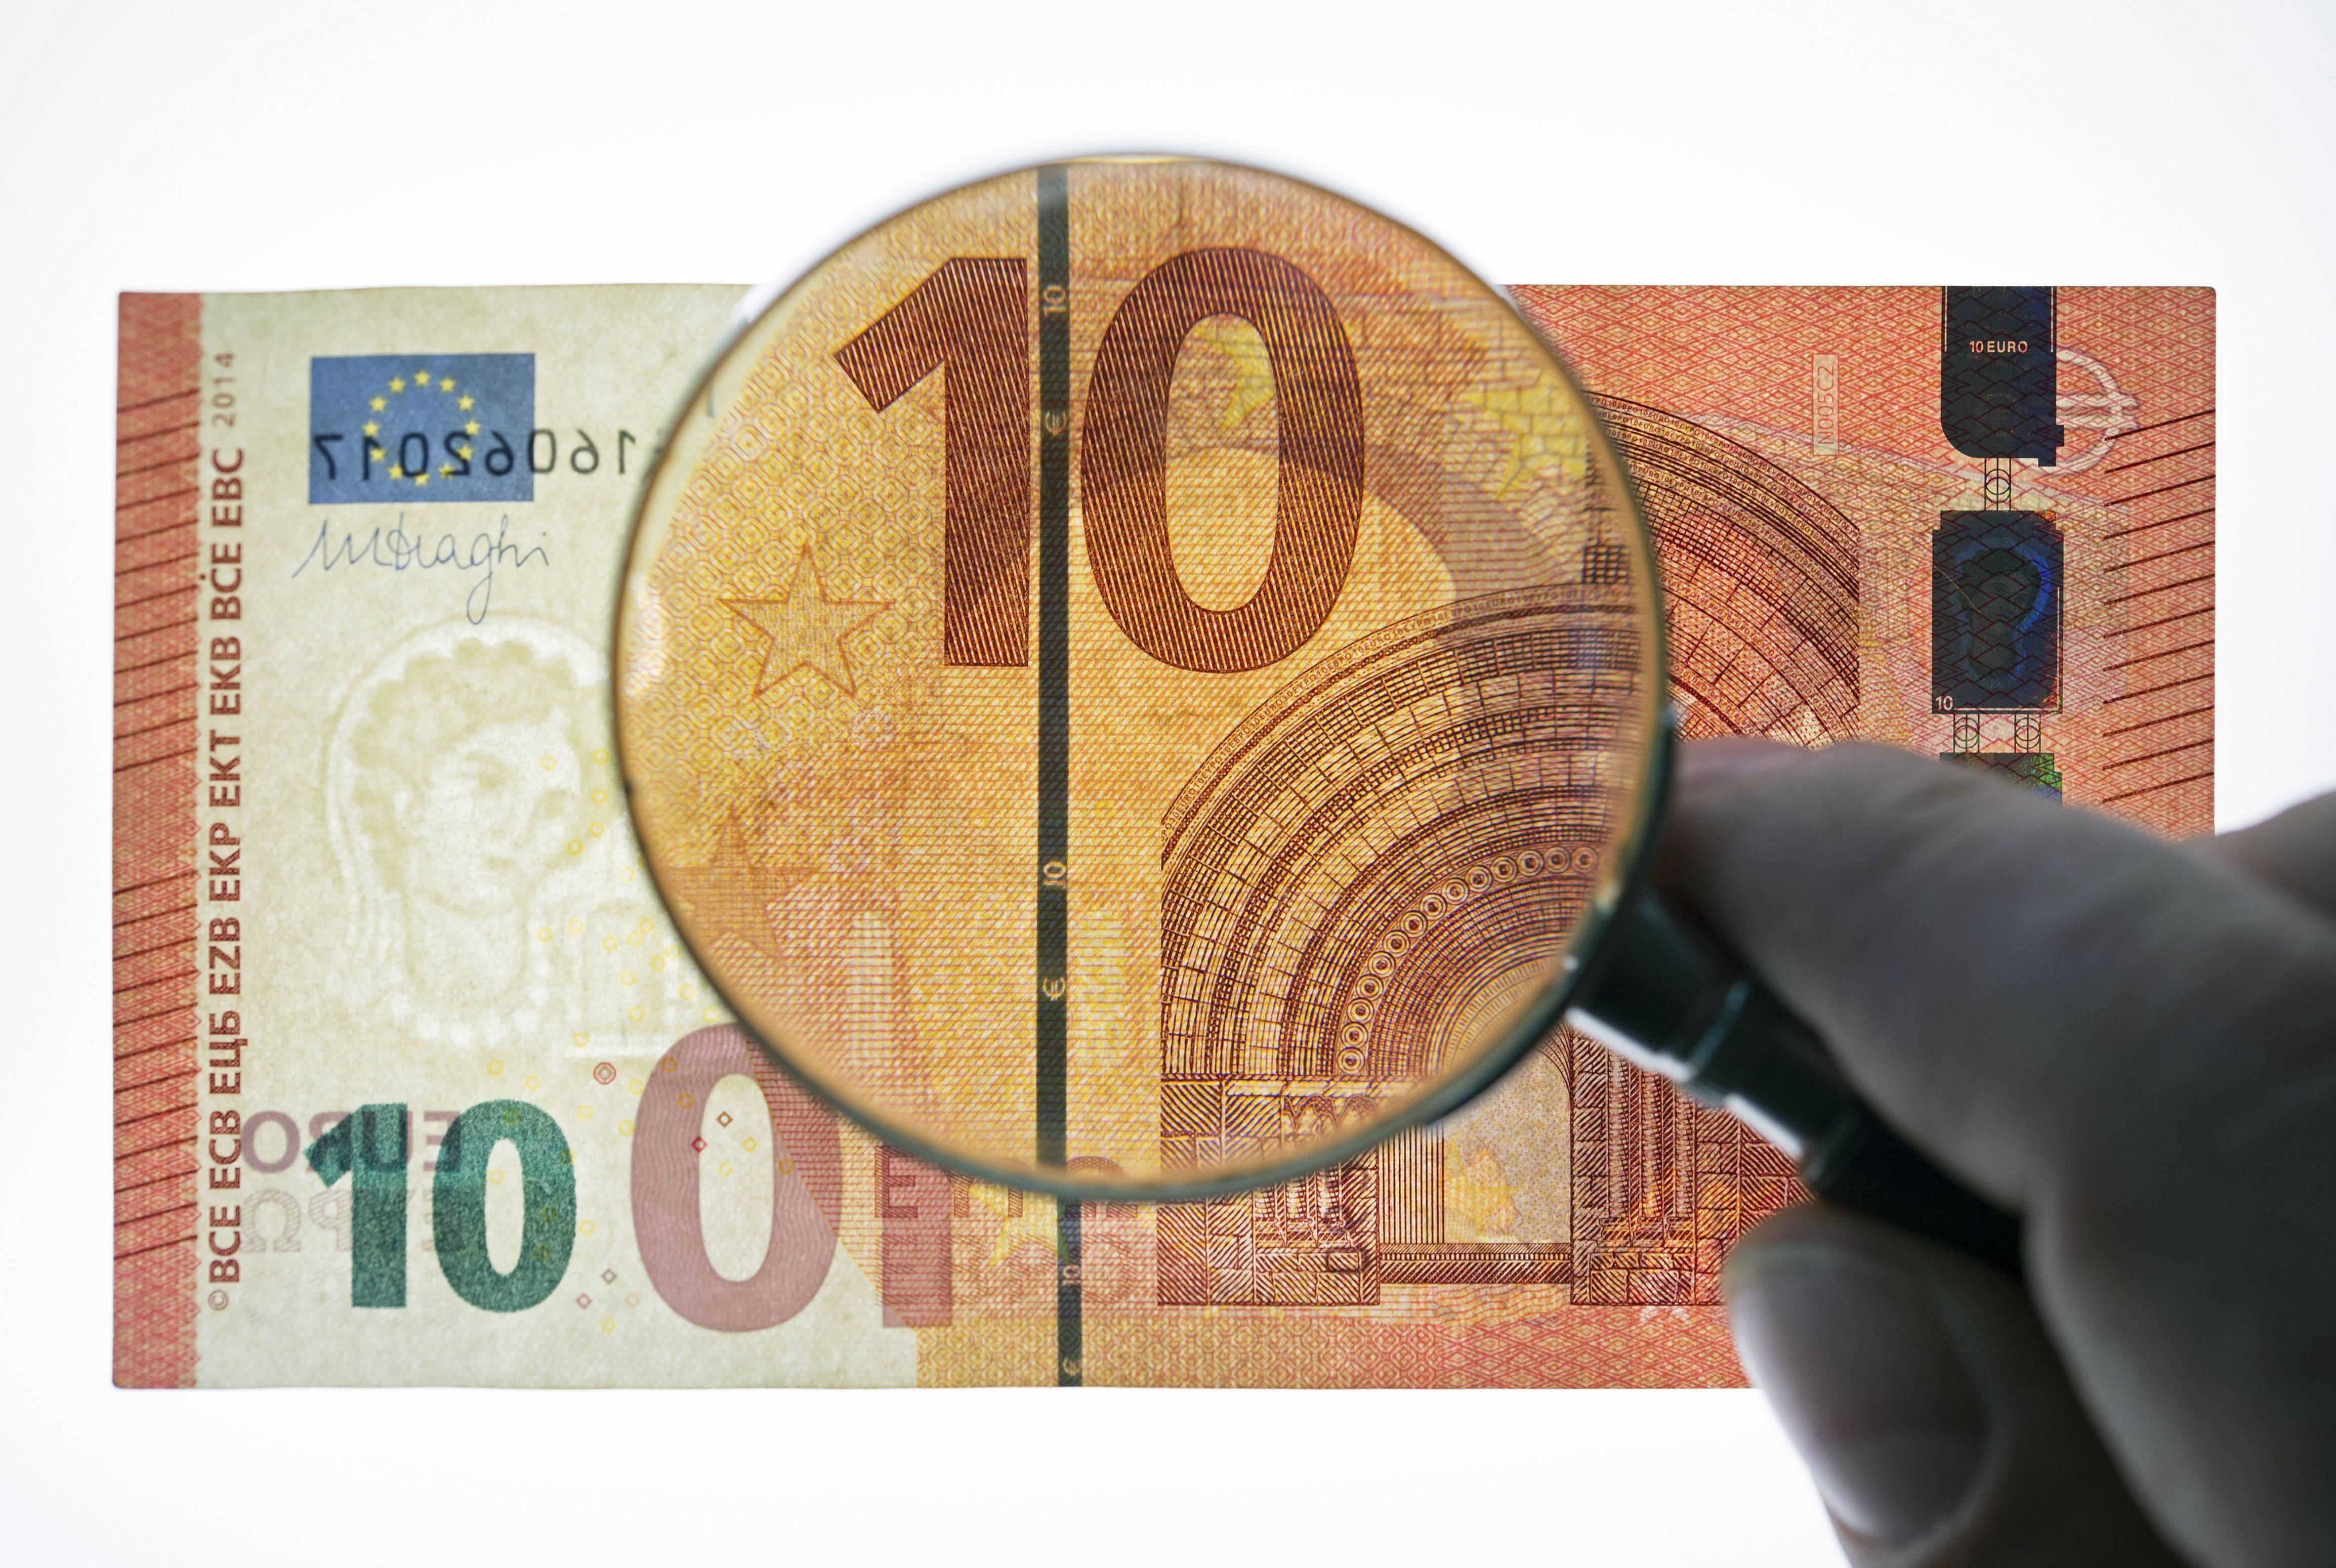 A counterfeit money expert of the German Federal Bank showing the security features Thursday of a new ten euro banknote during a press conference at the branch office of the German Federal Bank in Erfurt, central Germany.